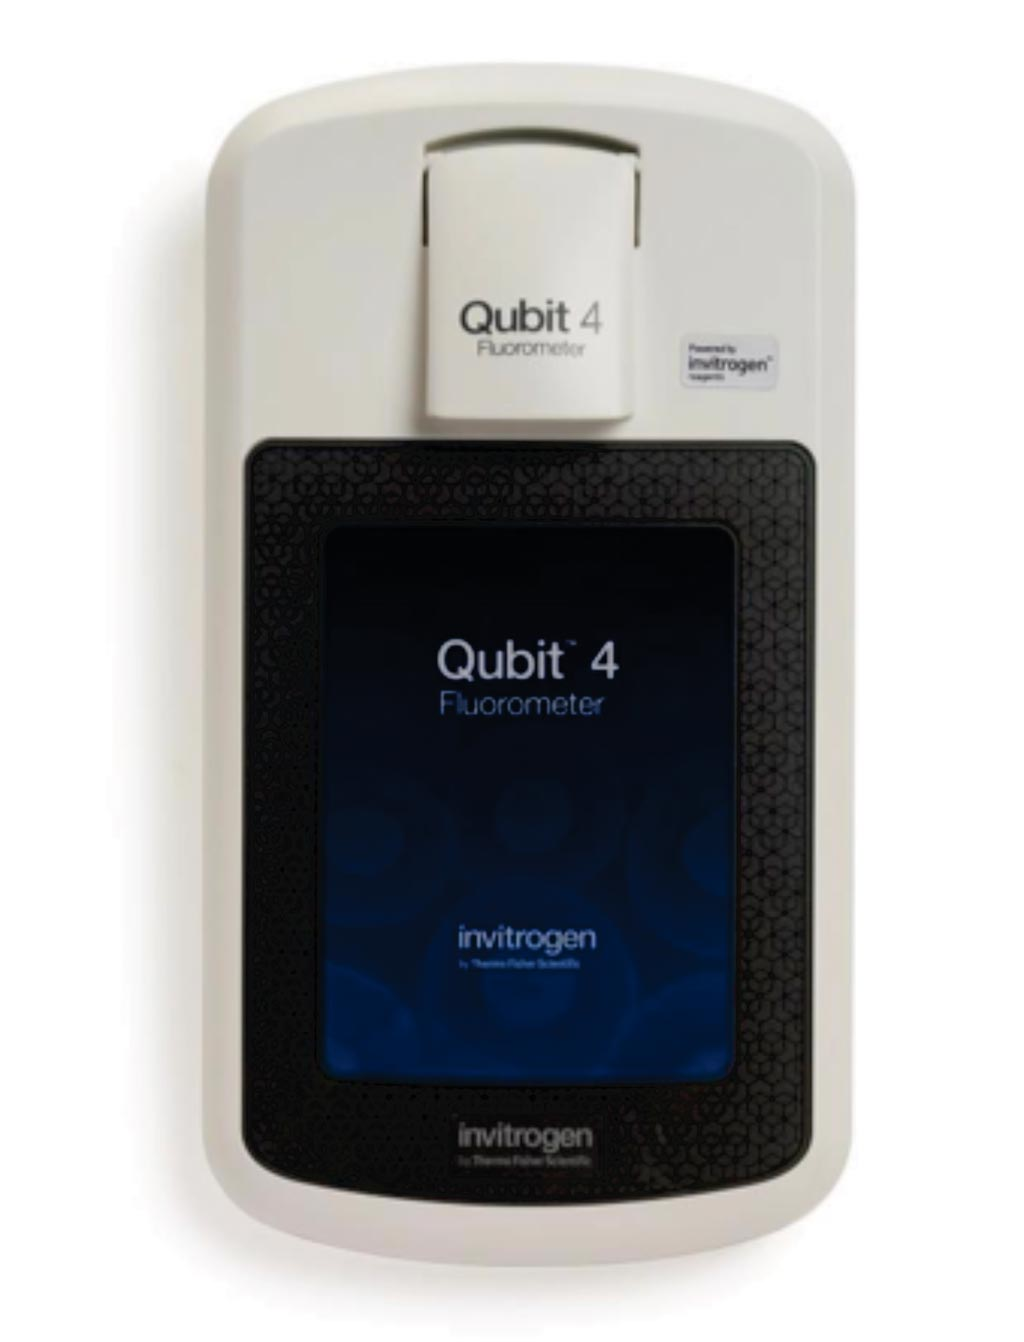 Image: The Invitrogen Qubit 4 Fluorometer is the next generation of the popular benchtop fluorometer designed to accurately measure DNA, RNA, and protein quantity (Photo courtesy of Thermo Fisher Scientific).